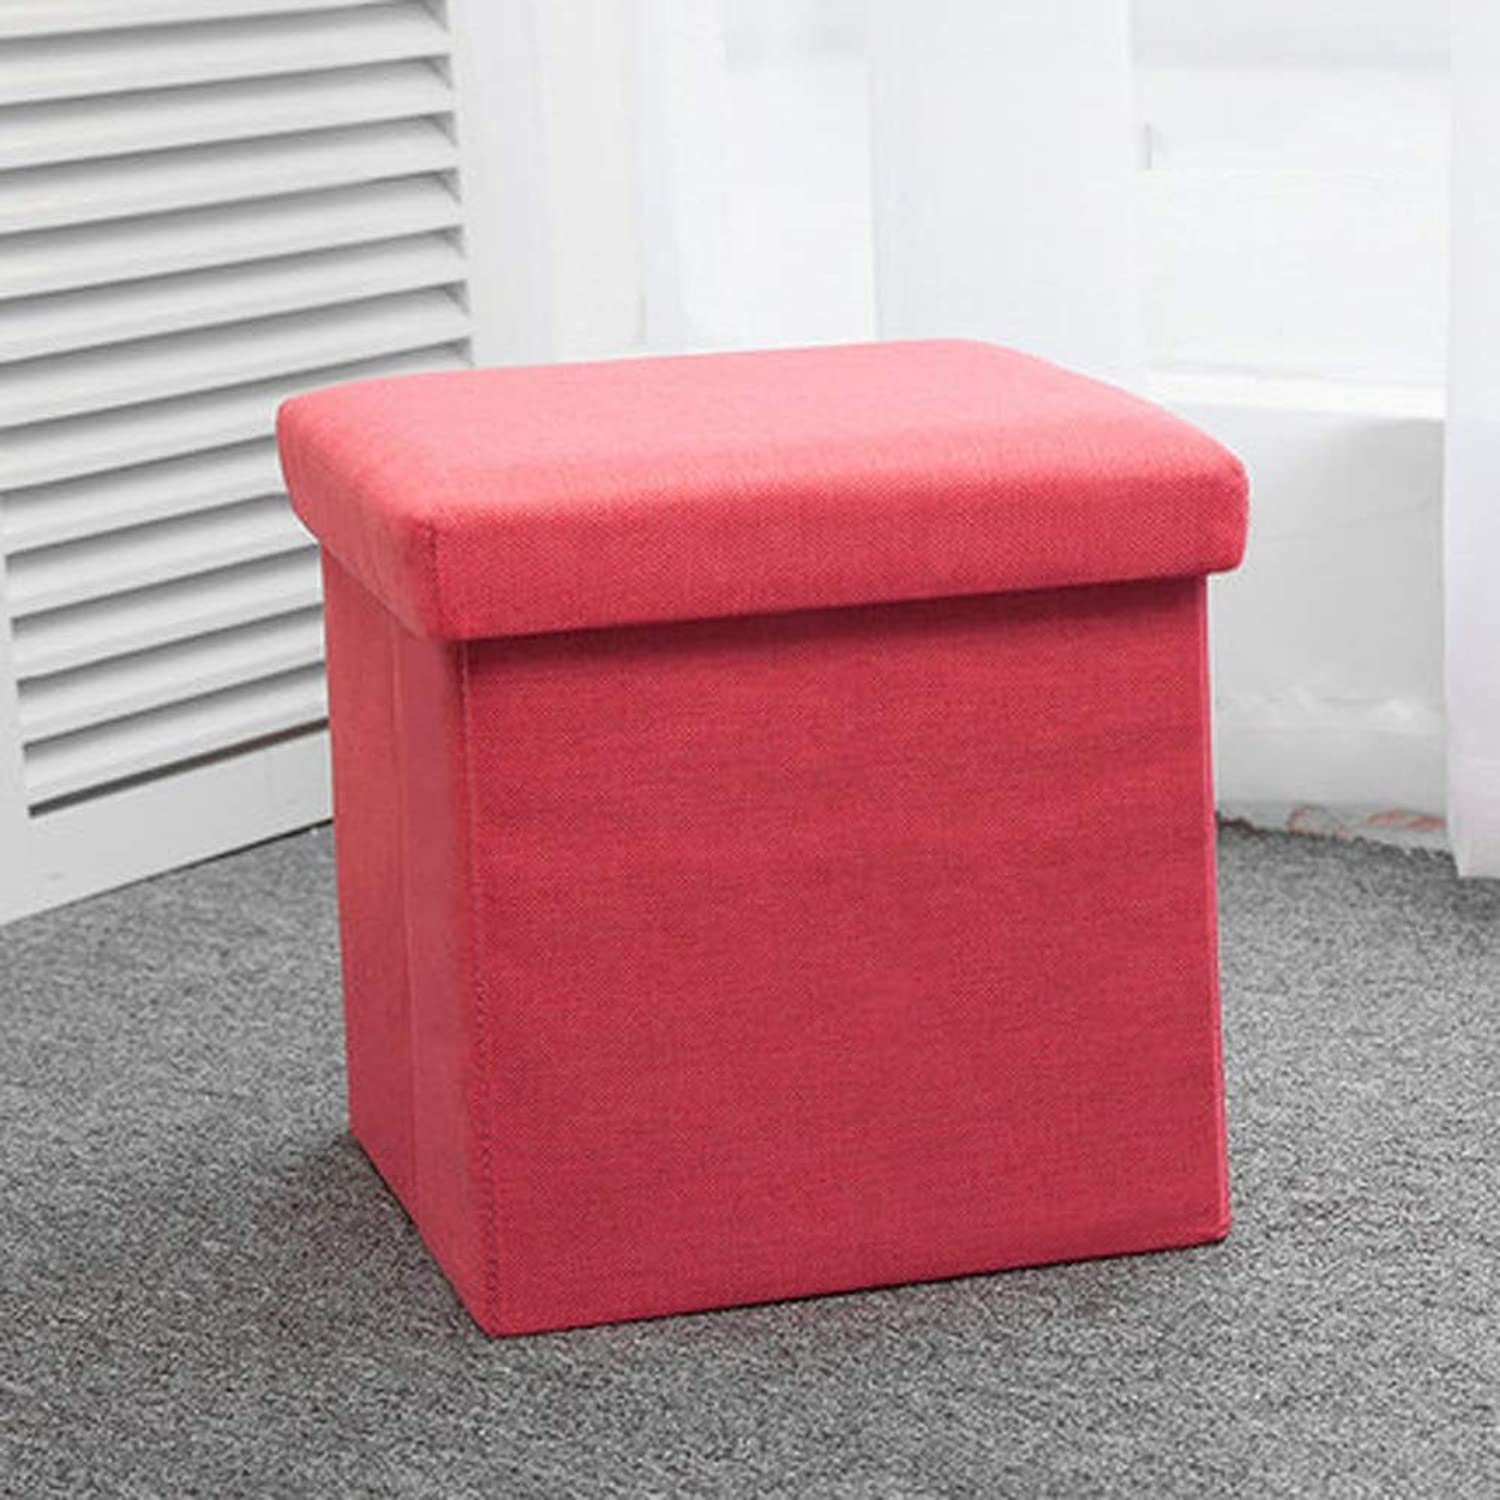 AINIYF Multi-Functional Storage Stool, Adult Sofa Stool Folding Fabric Storage Box shoes Bench Household - Load-Bearing, Can Sit and Store, Plain, Simple, Wild (color   Red, Size   M)